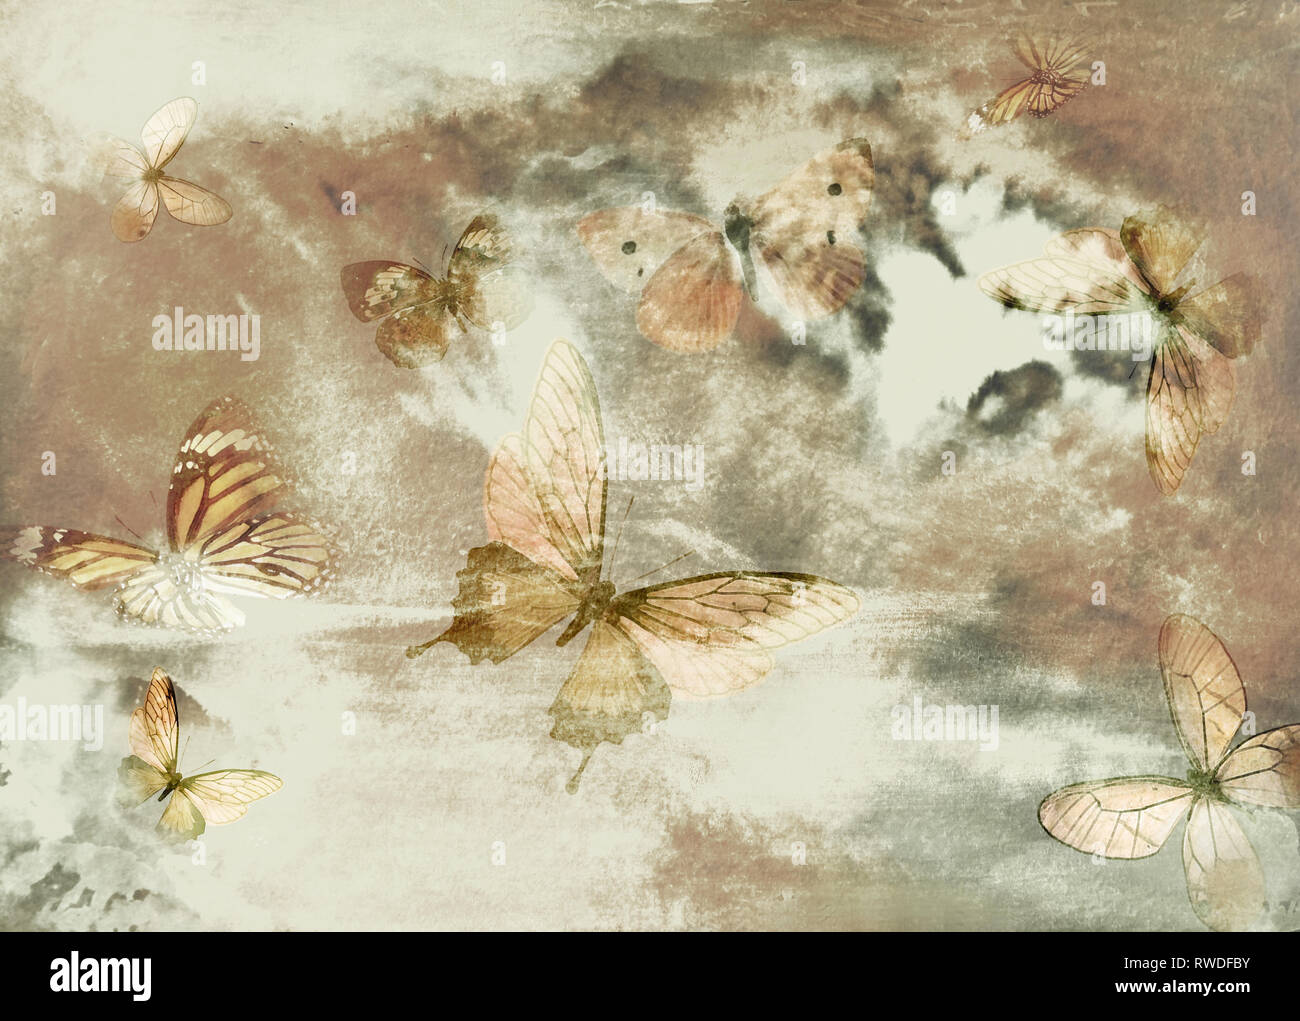 Watercolor vintage background with butterflies in sepia tones. - Stock Image